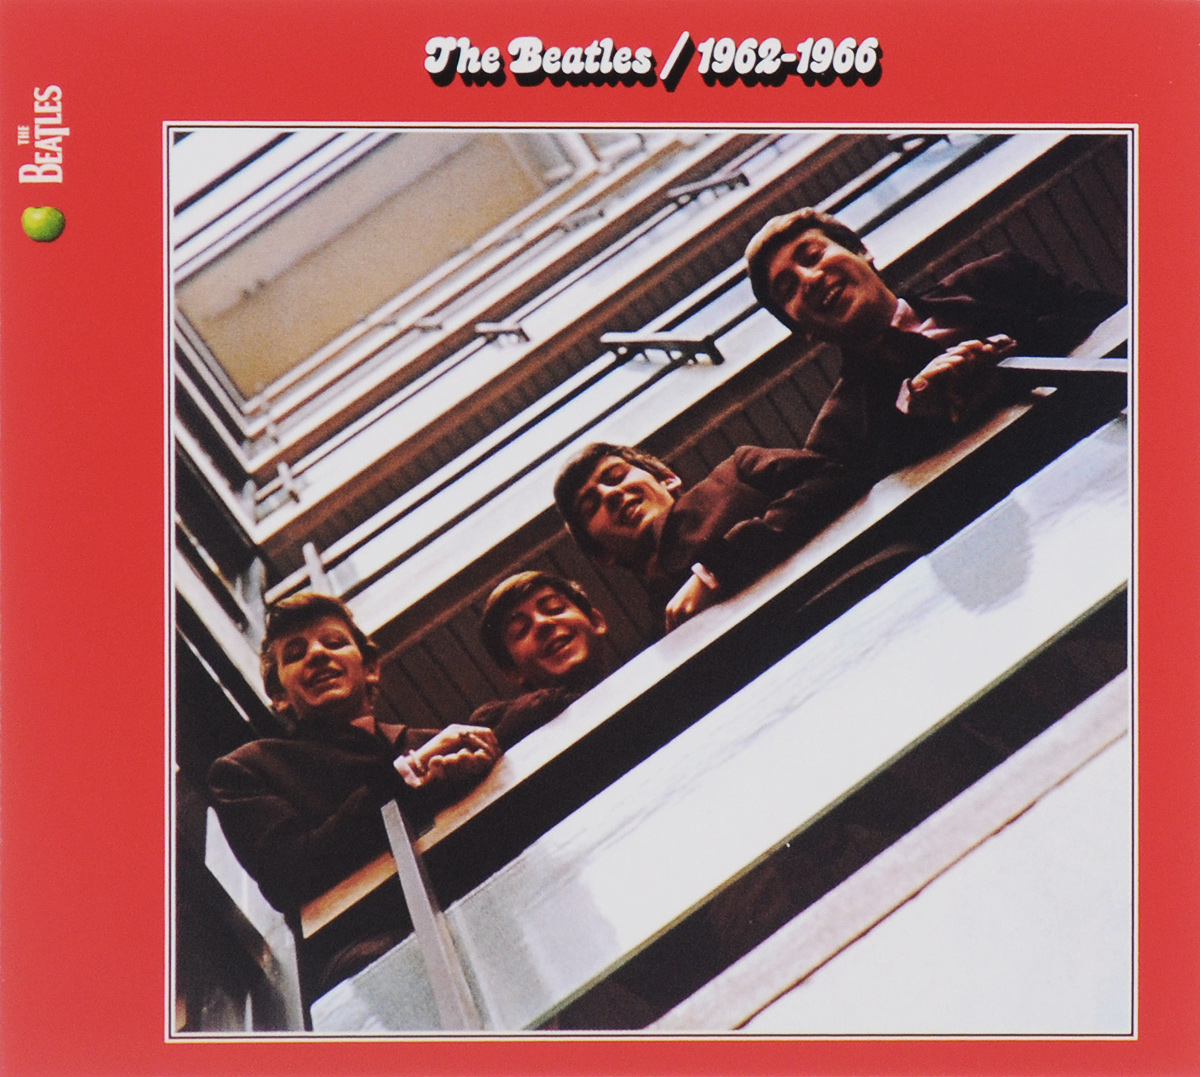 The Beatles The Beatles. 1962-1966 (2 CD) виниловая пластинка the beatles 1962 1966 remastered